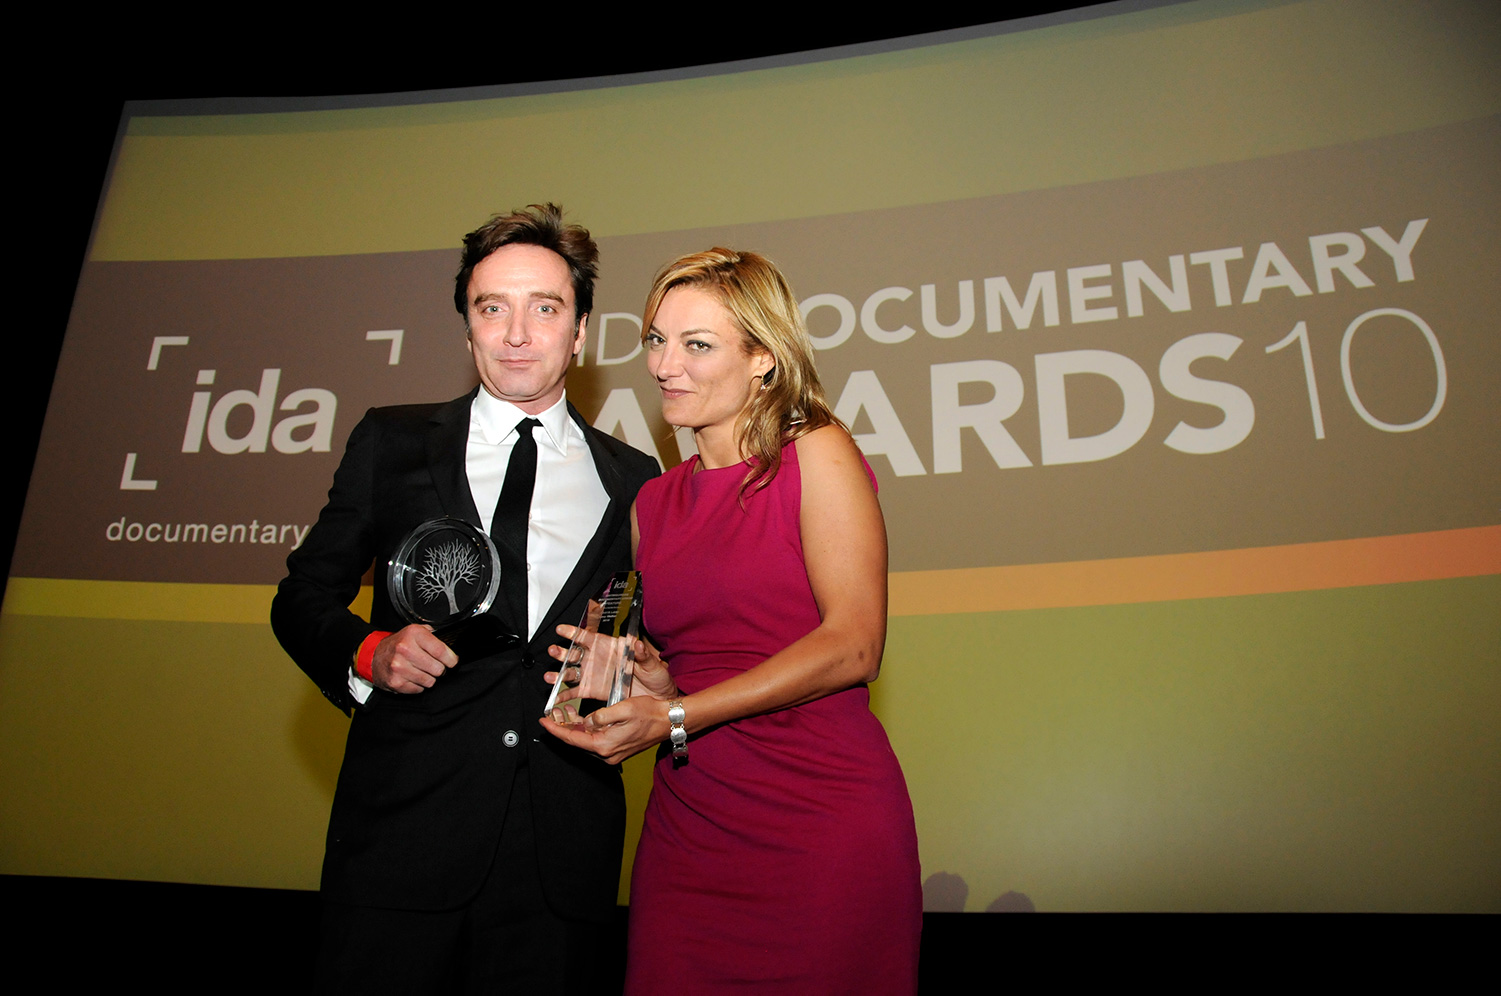 Filmmaker Lucy Walker and Producer Angus Aynsley accept the Pare Lorentz Award for 'Waste Land' at the 2010 Documentary Awards